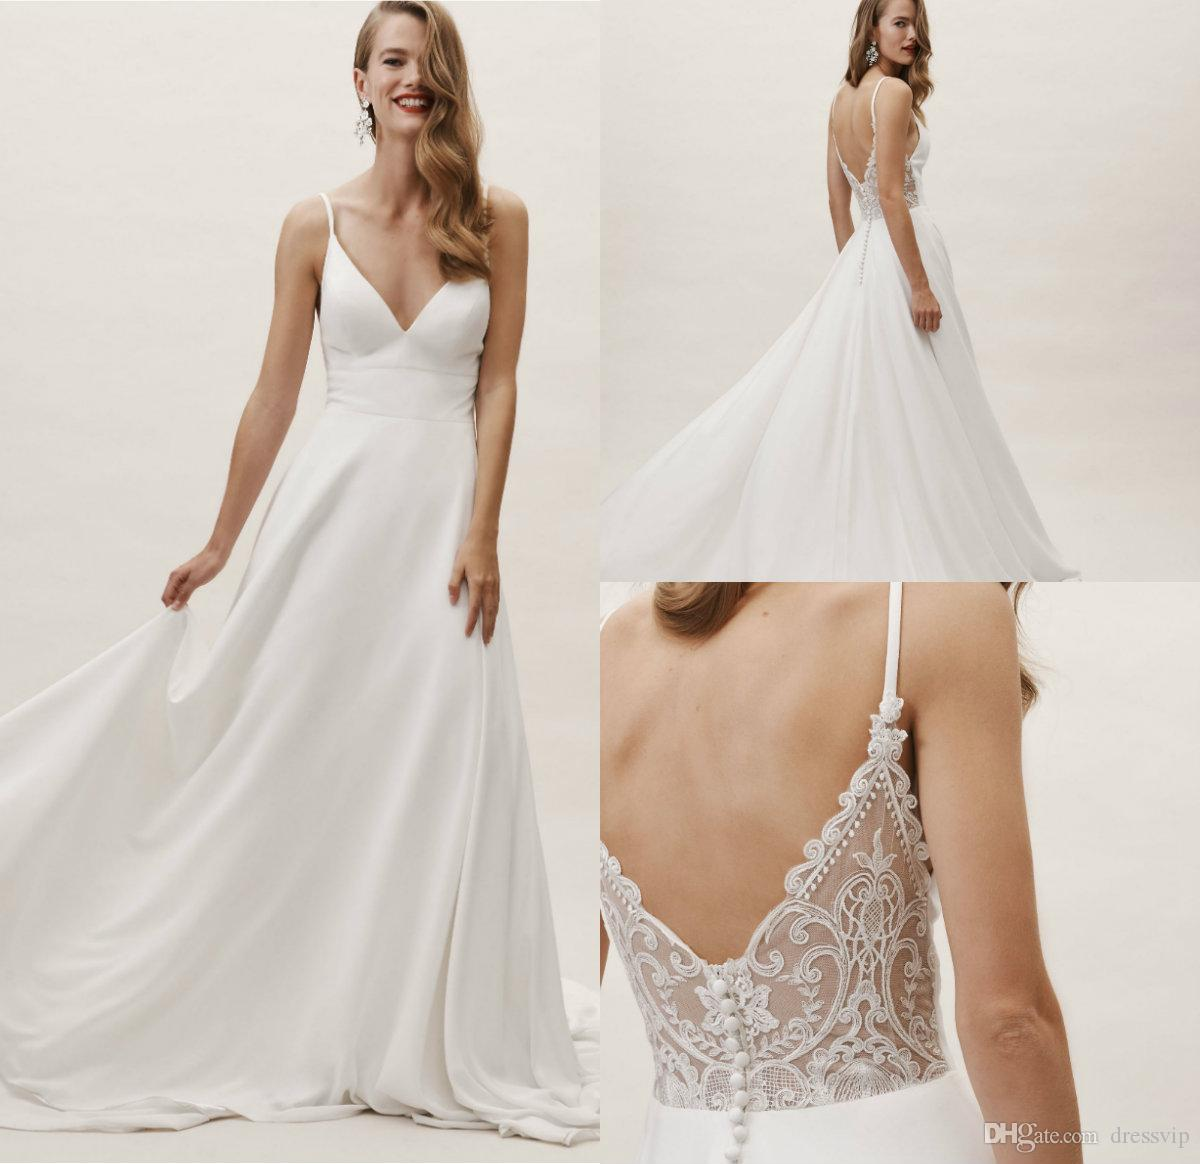 Bhldn Bohemian Wedding Dresses Spaghetti Straps A Line Lace Back Soft Satin Beach Wedding Dress Custom Made Plus Size Bridal Gowns